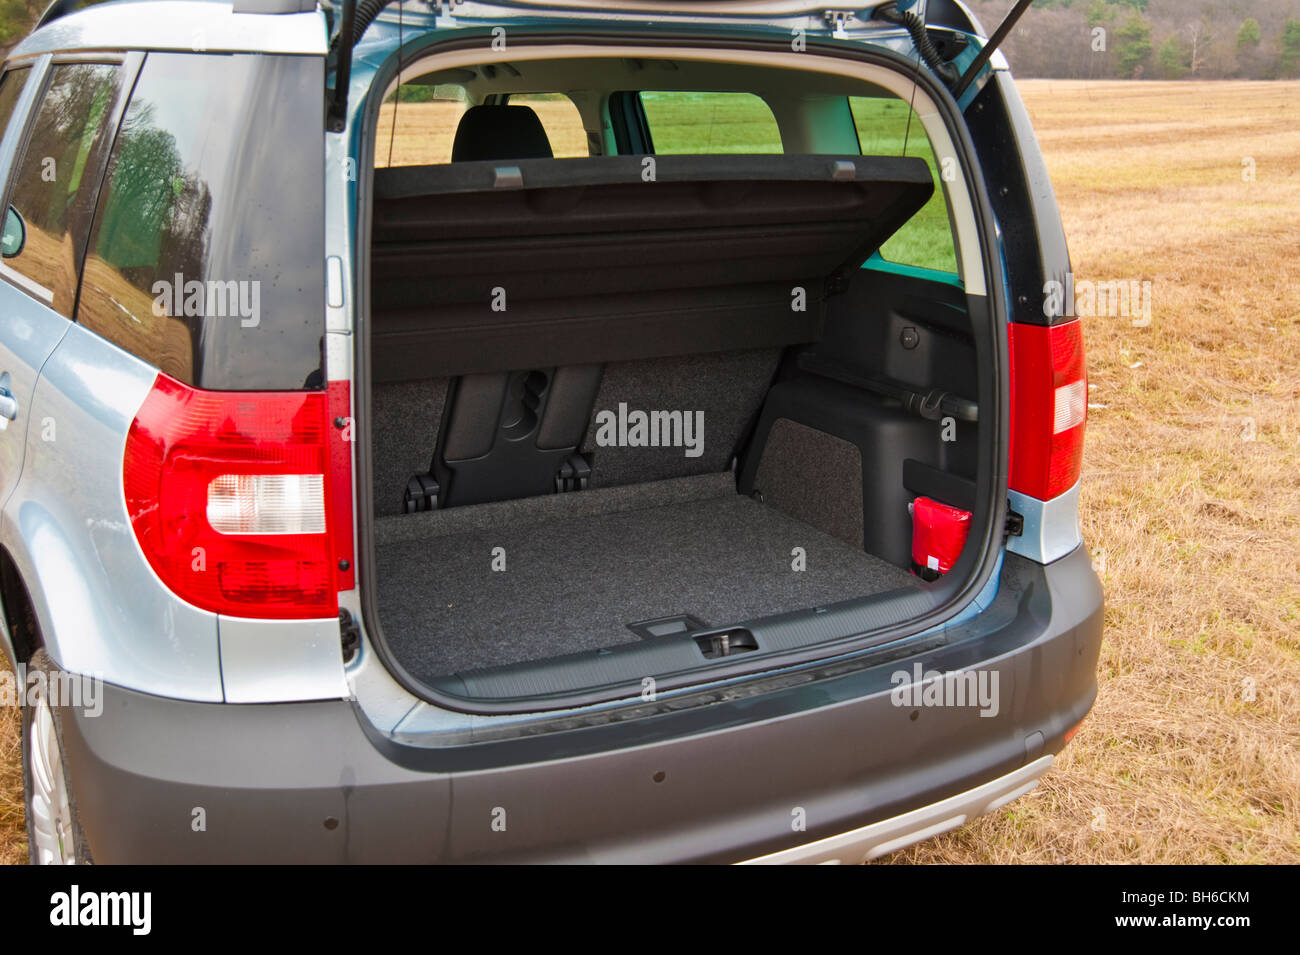 boot tronc coffre bagages mod le 2010 suv skoda yeti banque d 39 images photo stock 27801192. Black Bedroom Furniture Sets. Home Design Ideas